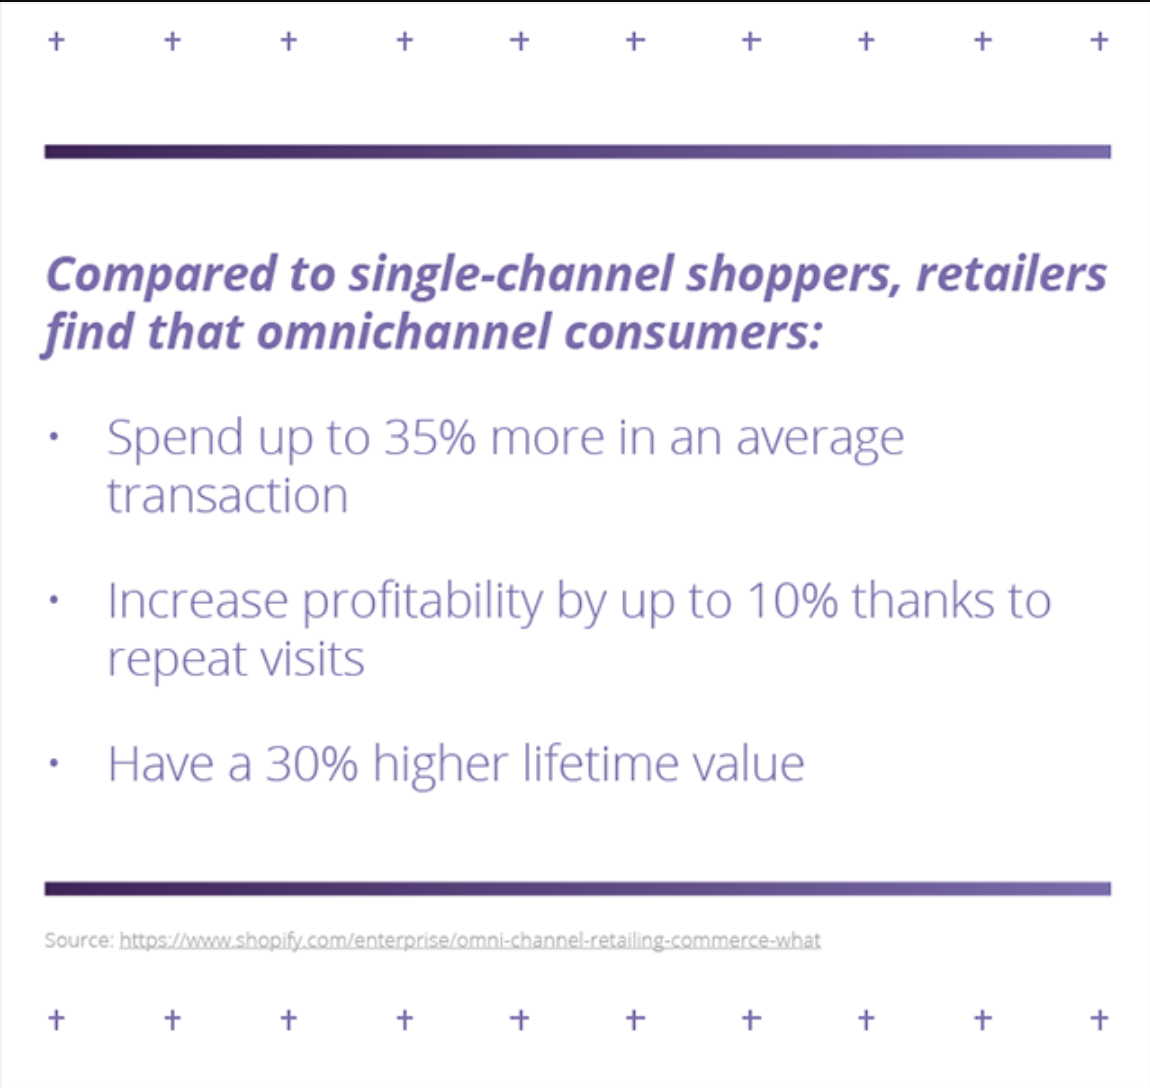 9 Omnichannel Retail Trends Shaping the Industry in 2019